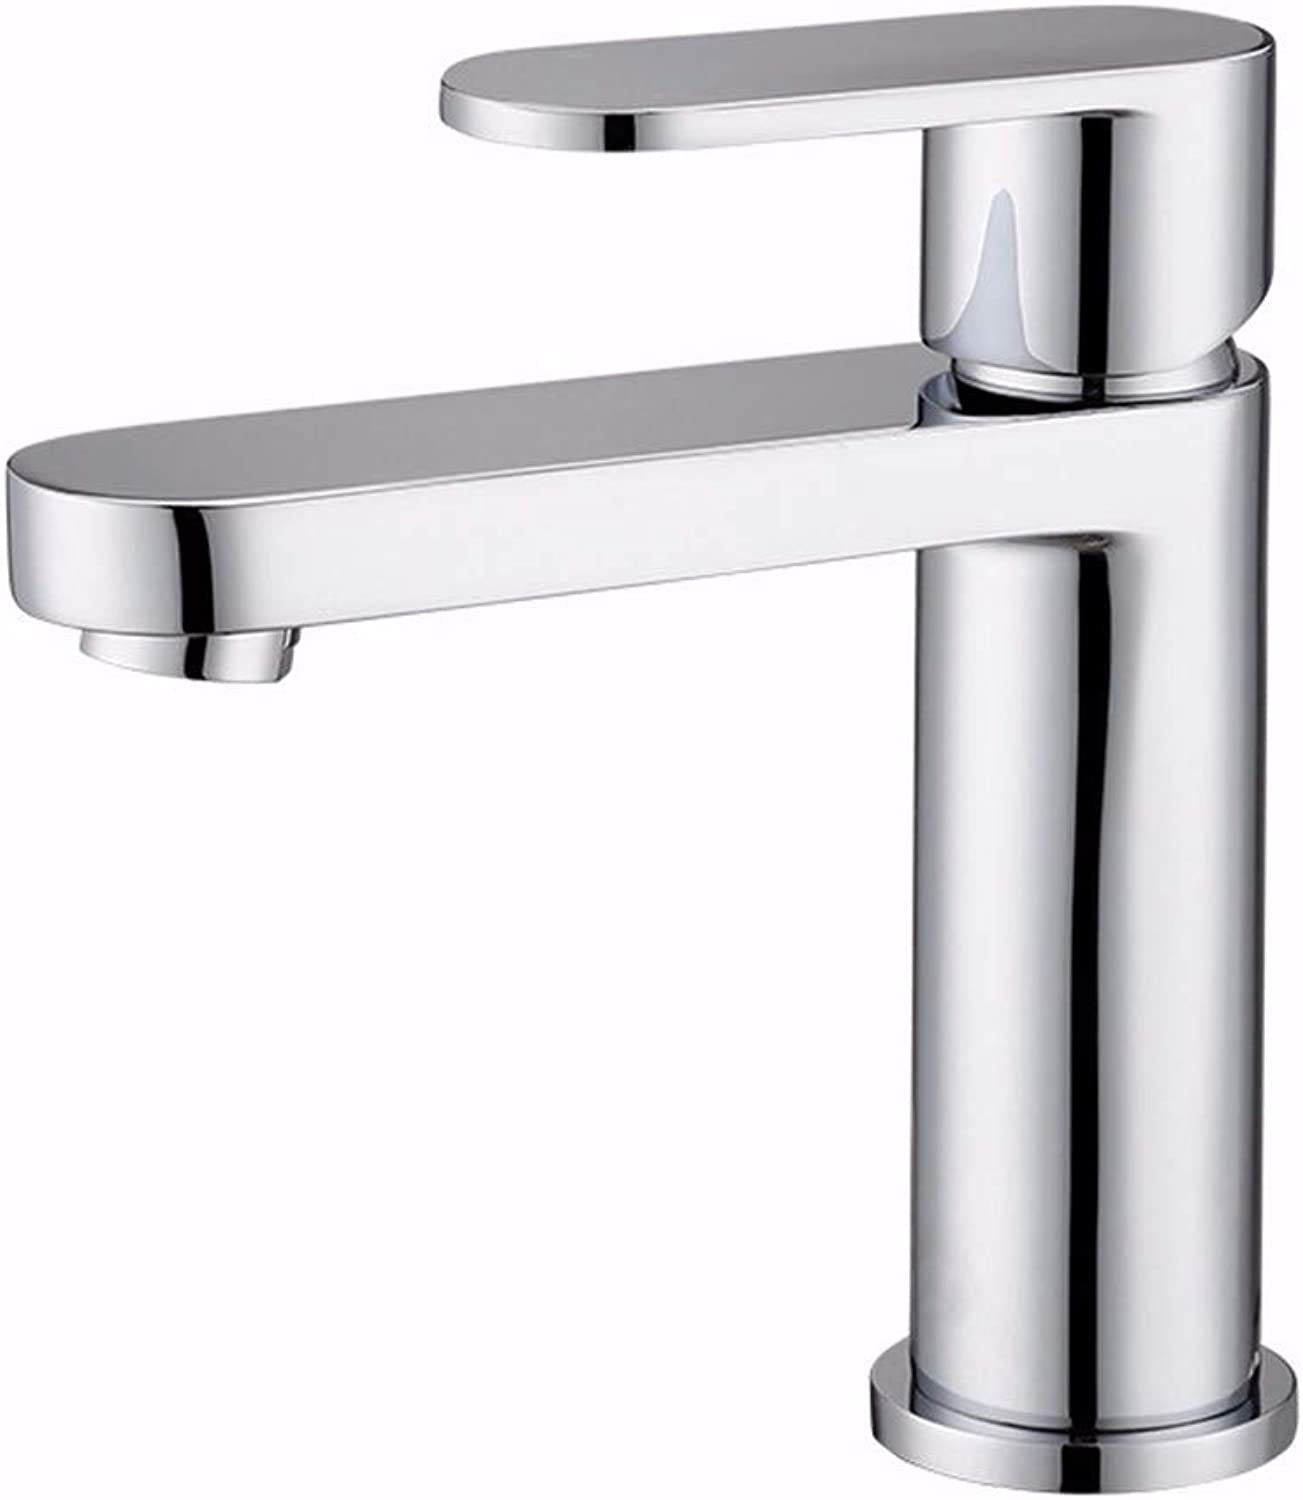 Yuanshuai88-Faucet Faucet single hole hot and cold basin washbasin faucet